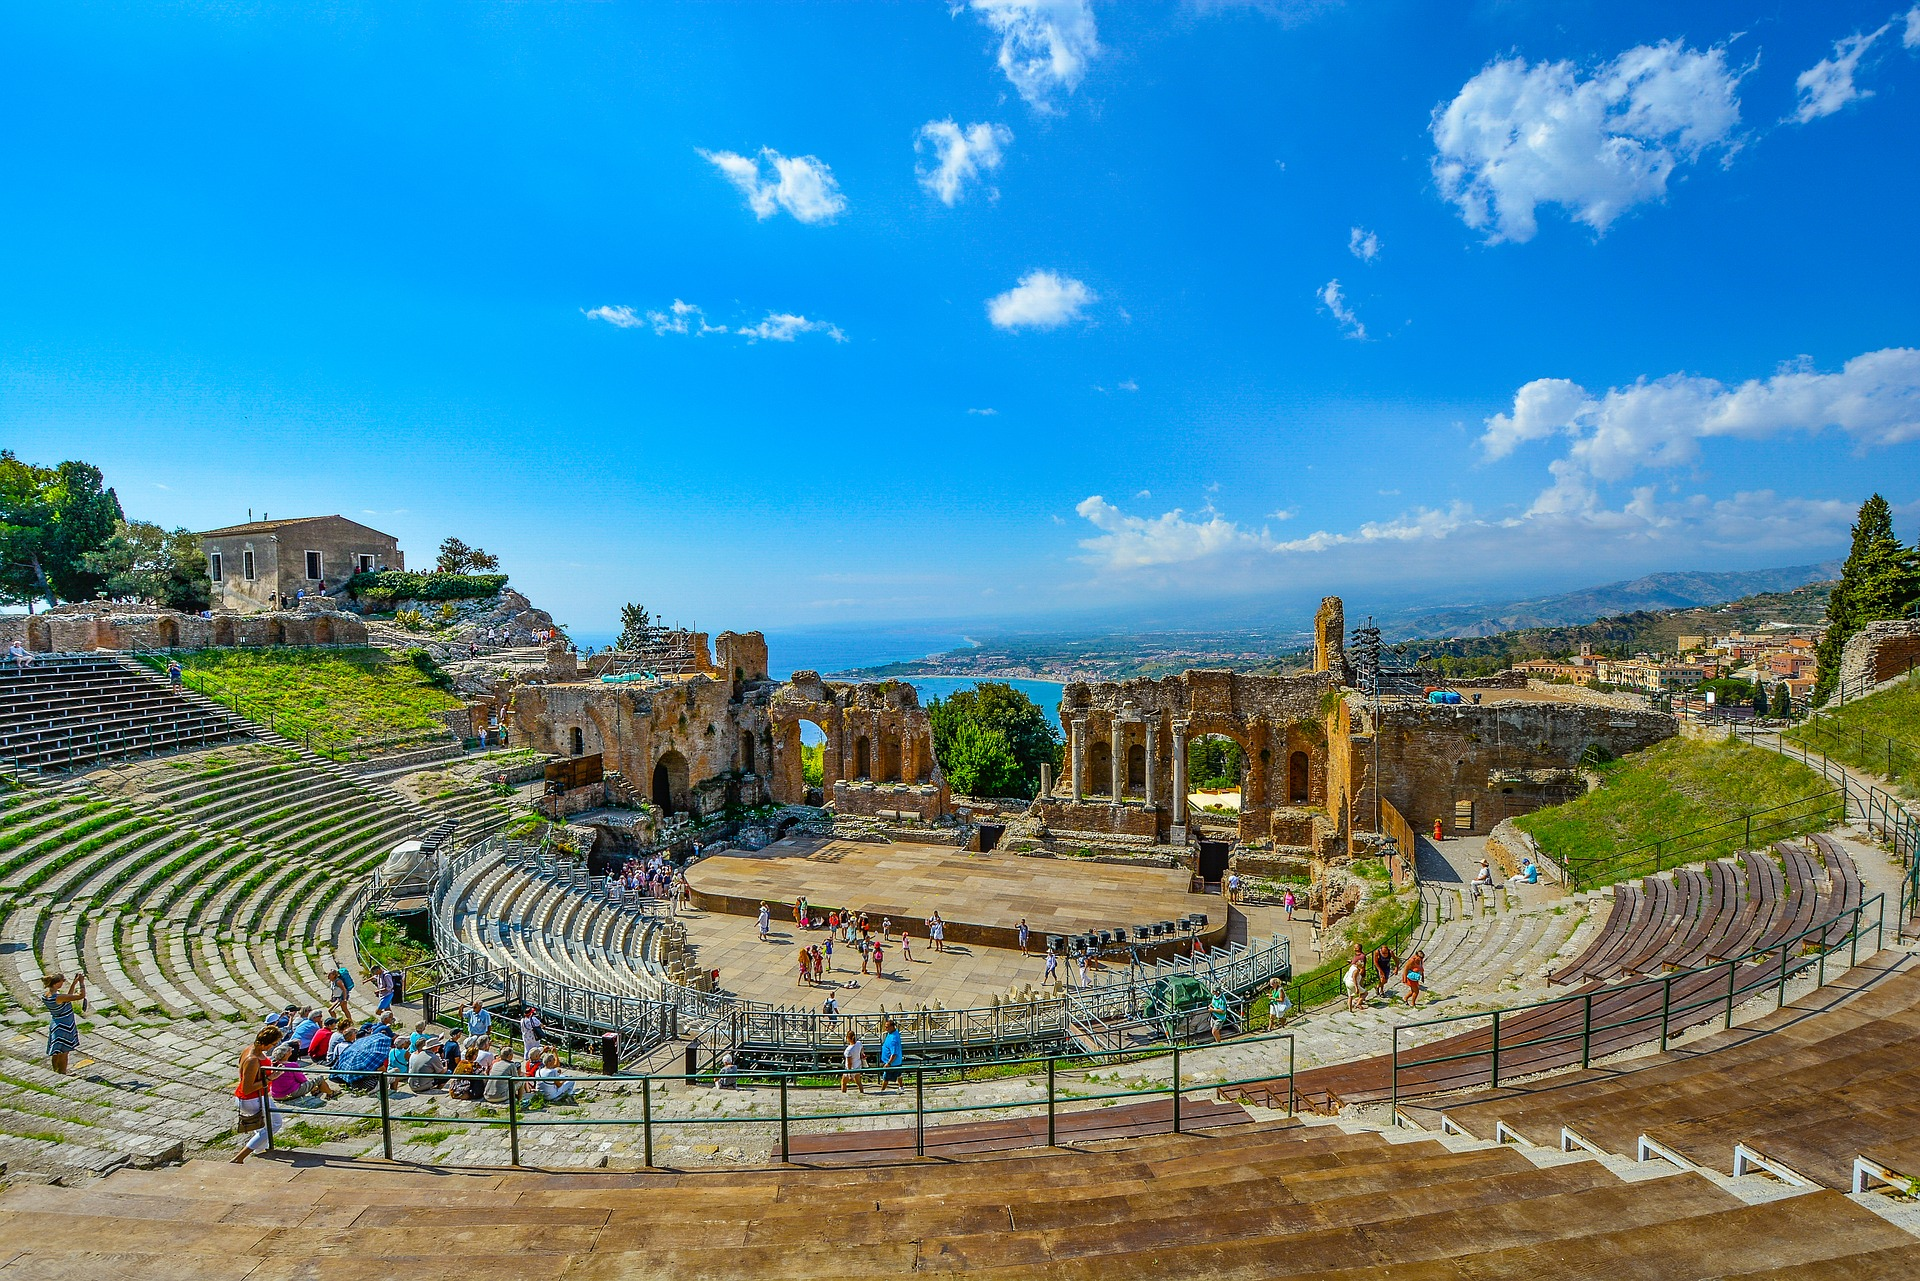 The Ancient Theatre in Taormina in Sicily, Italy